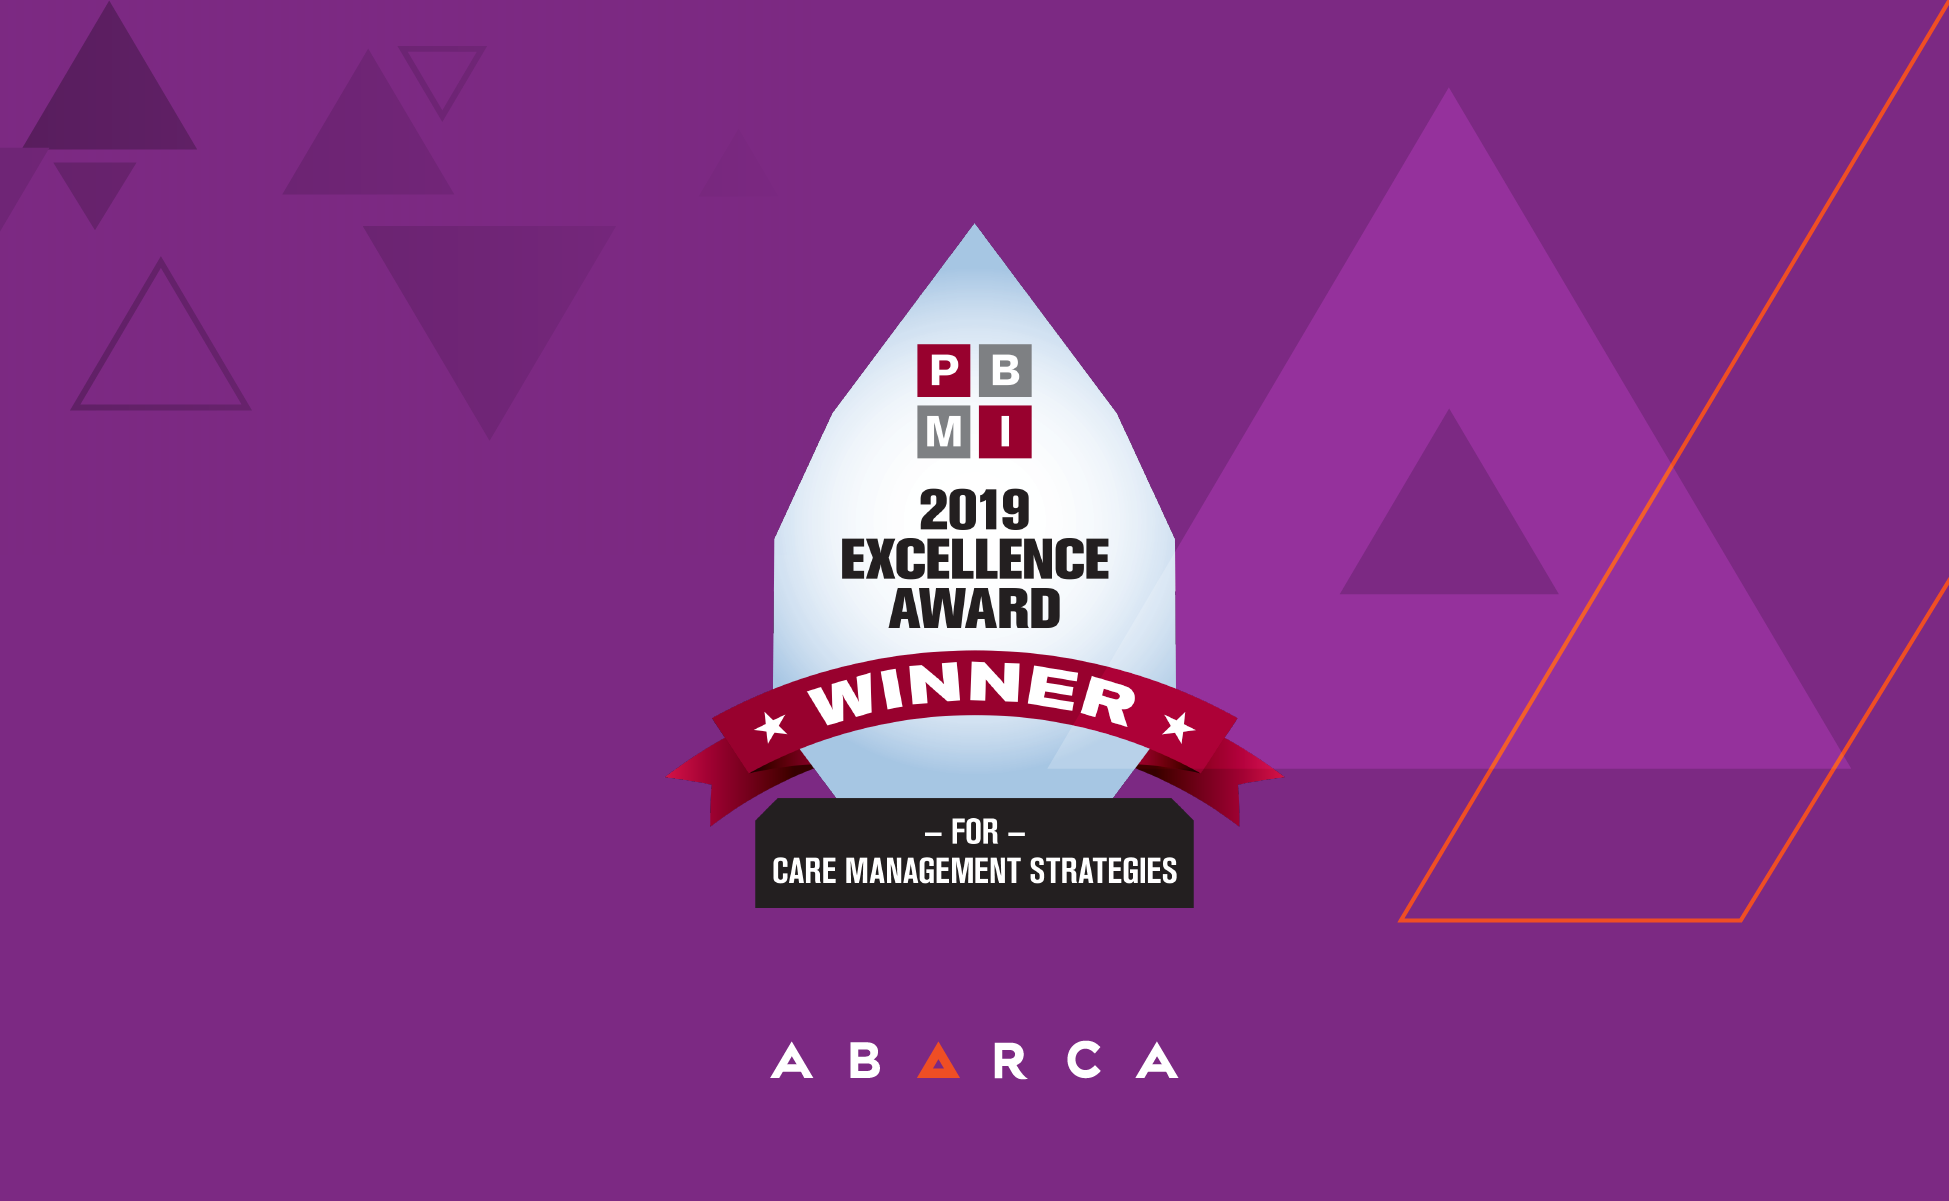 Abarca Receives PBMI Excellence Award for Care Management Strategies